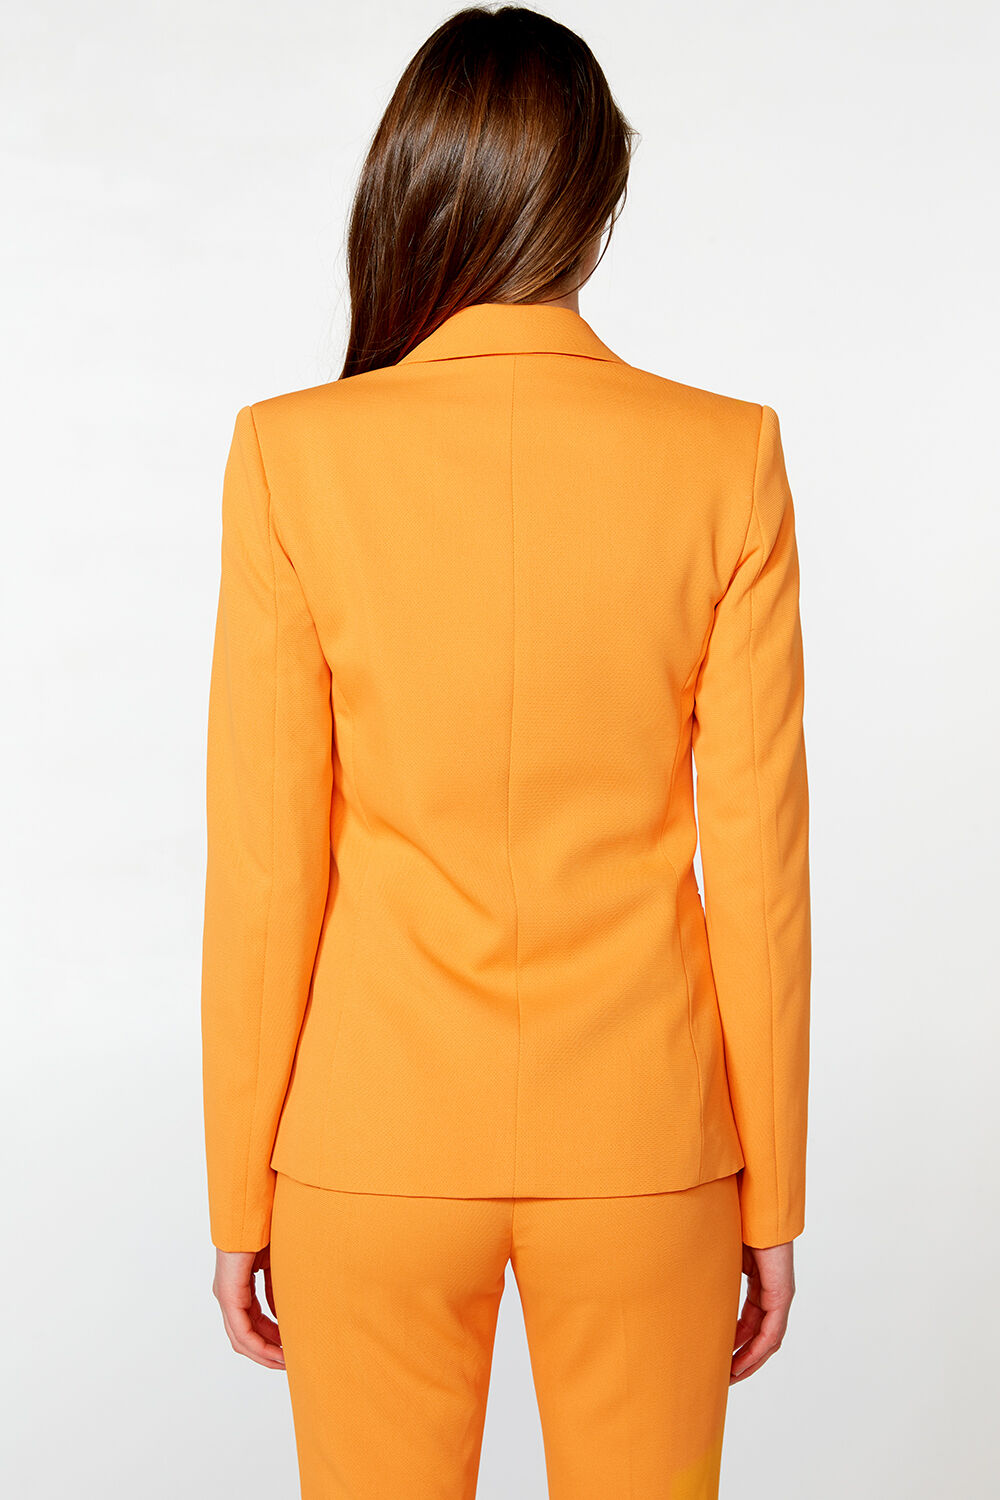 PARISIENNE BLAZER in colour CORAL